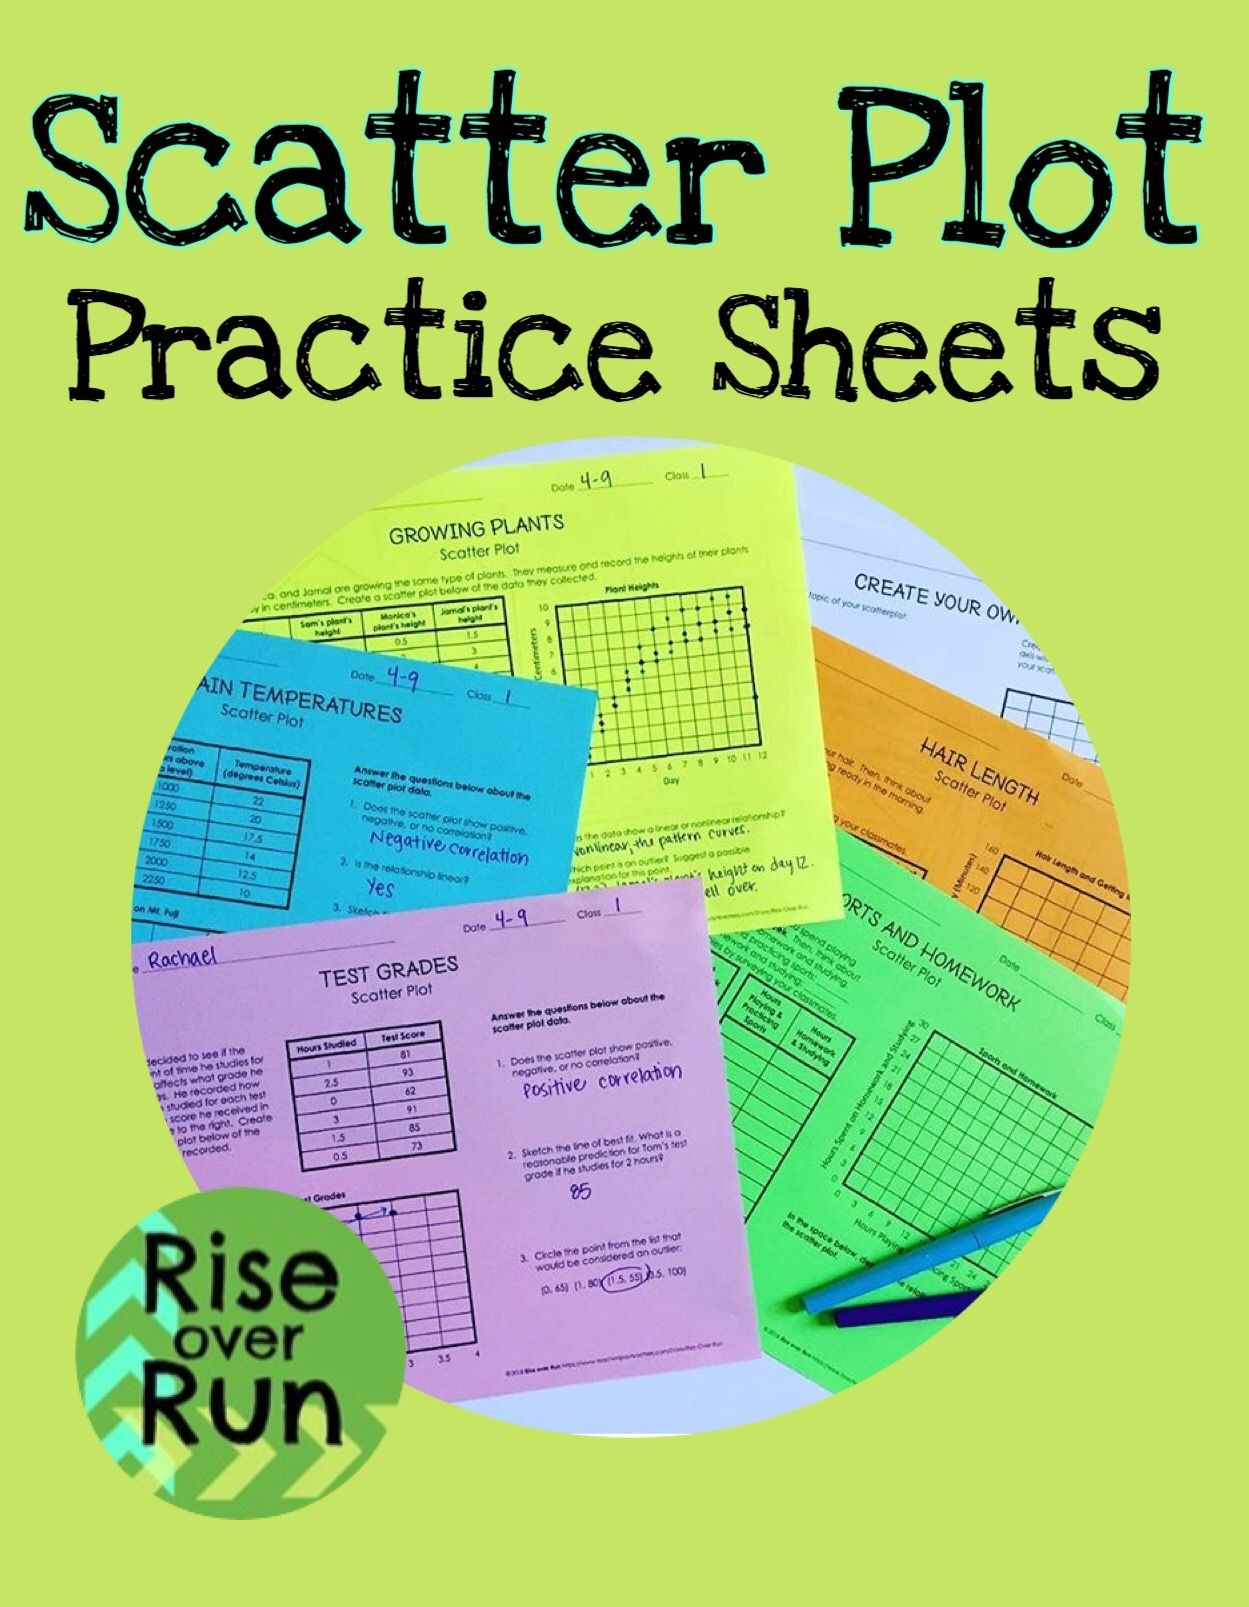 Scatter Plot Worksheets 8th Grade Scatter Plot Practice Worksheets and Blank Template to